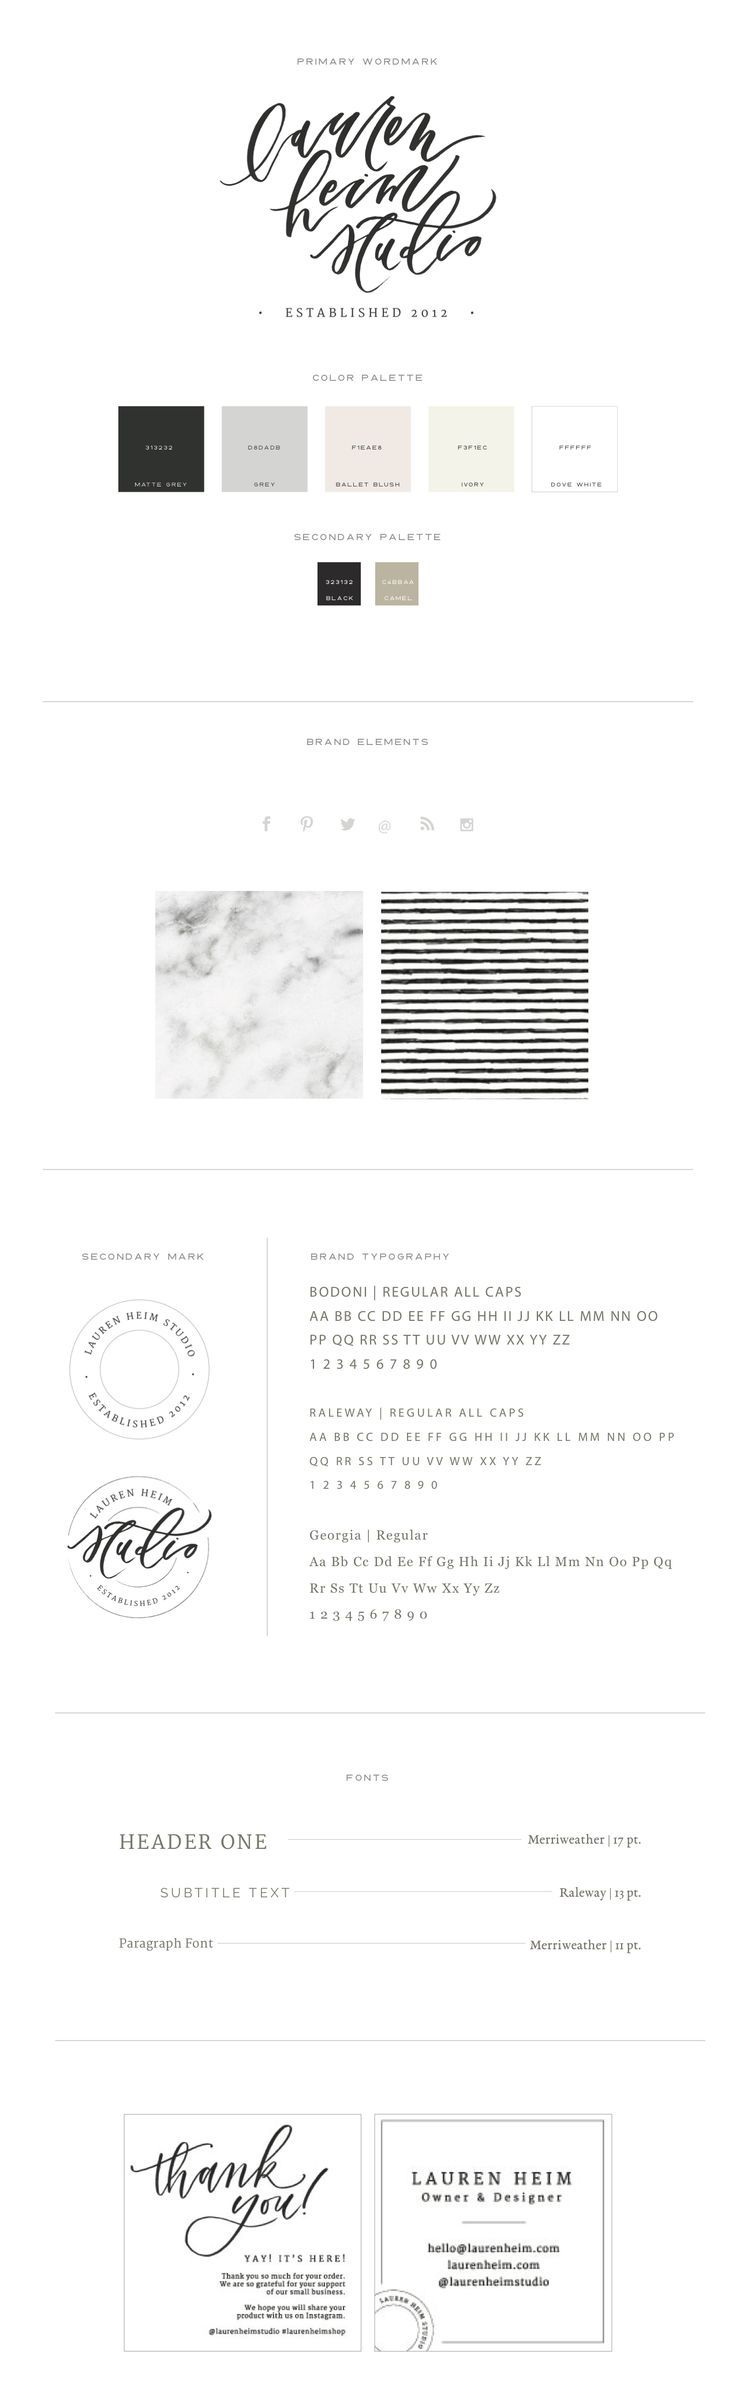 Ampoule laureen luhn design graphique - Branding For Lauren Heim Branding And Web Design For Women In Business By With Grace